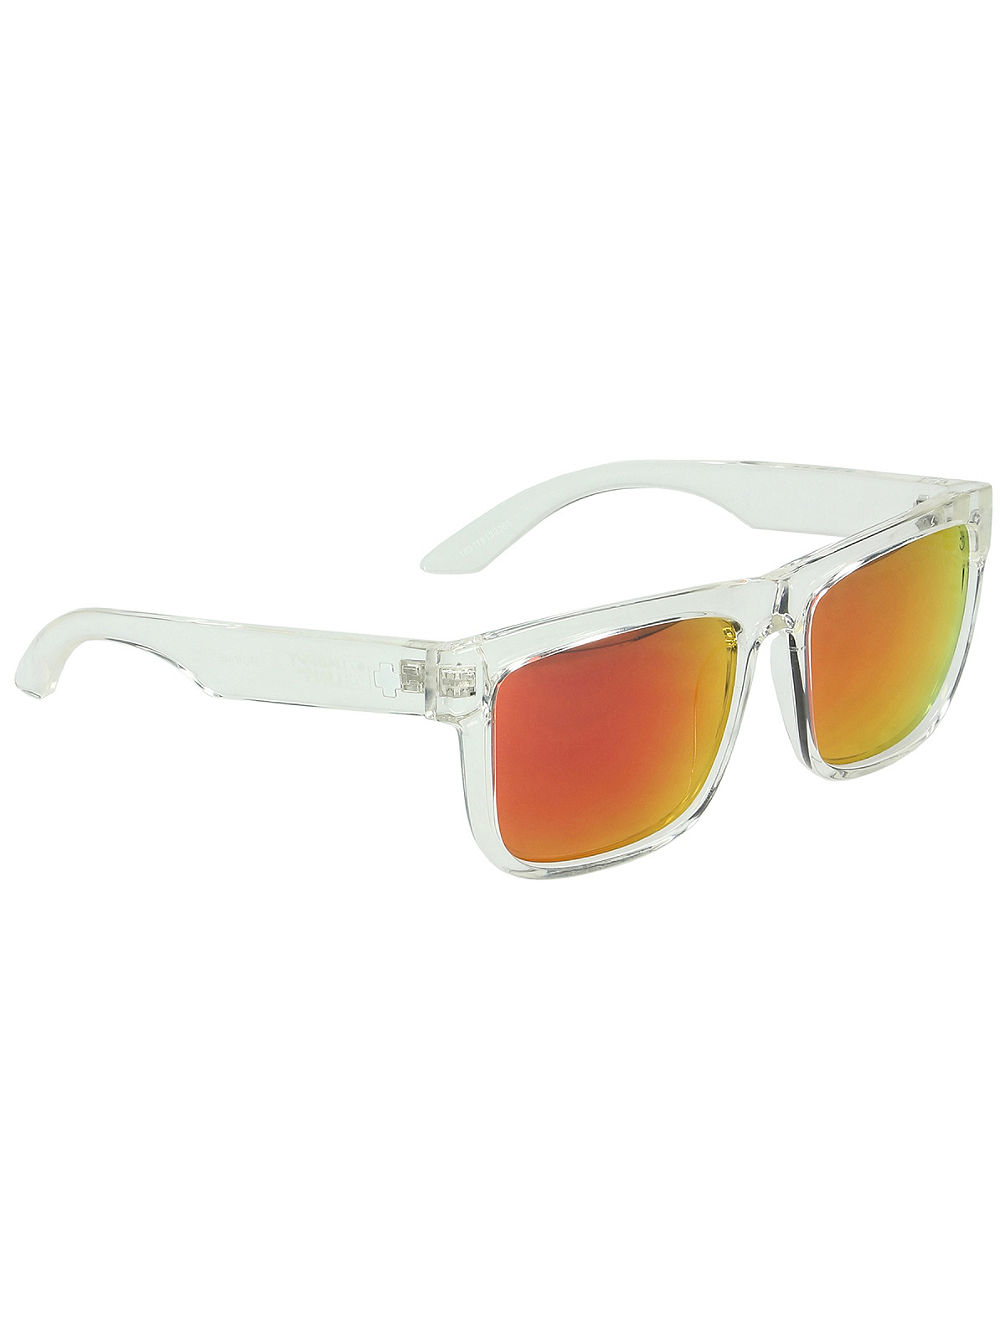 Discord Clear Sonnenbrille